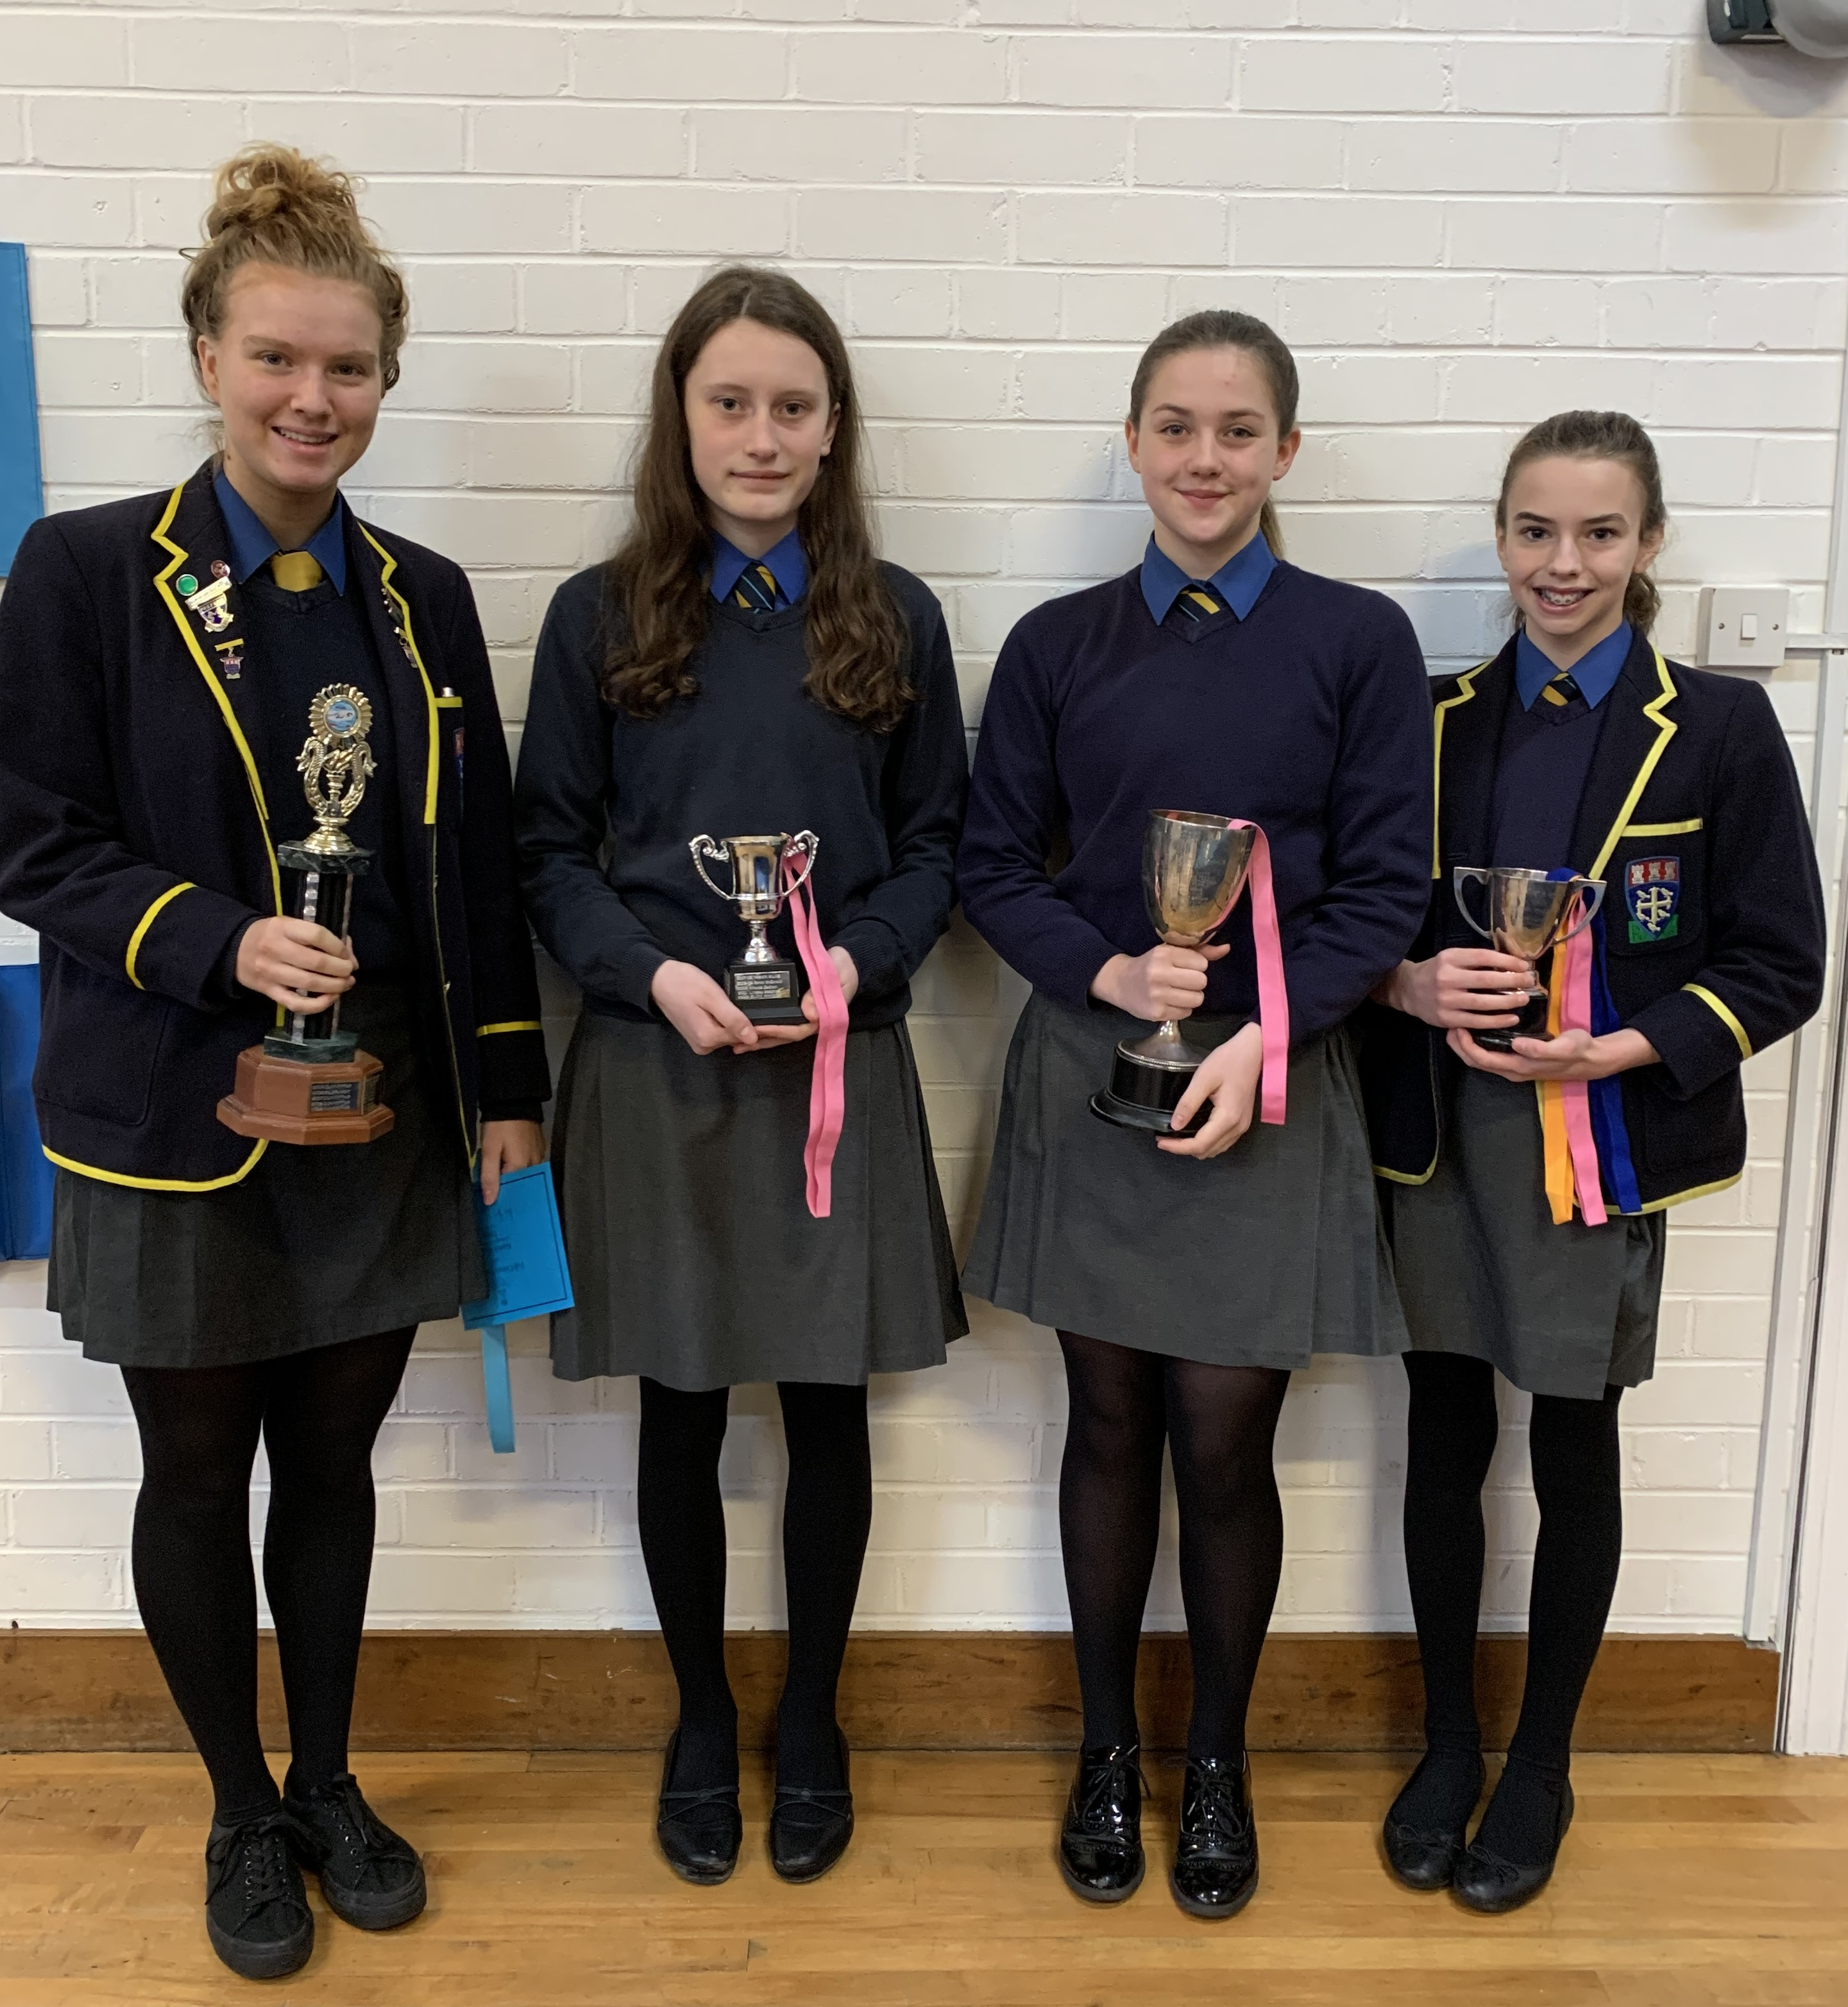 A record-breaking performance at the senior swimming gala